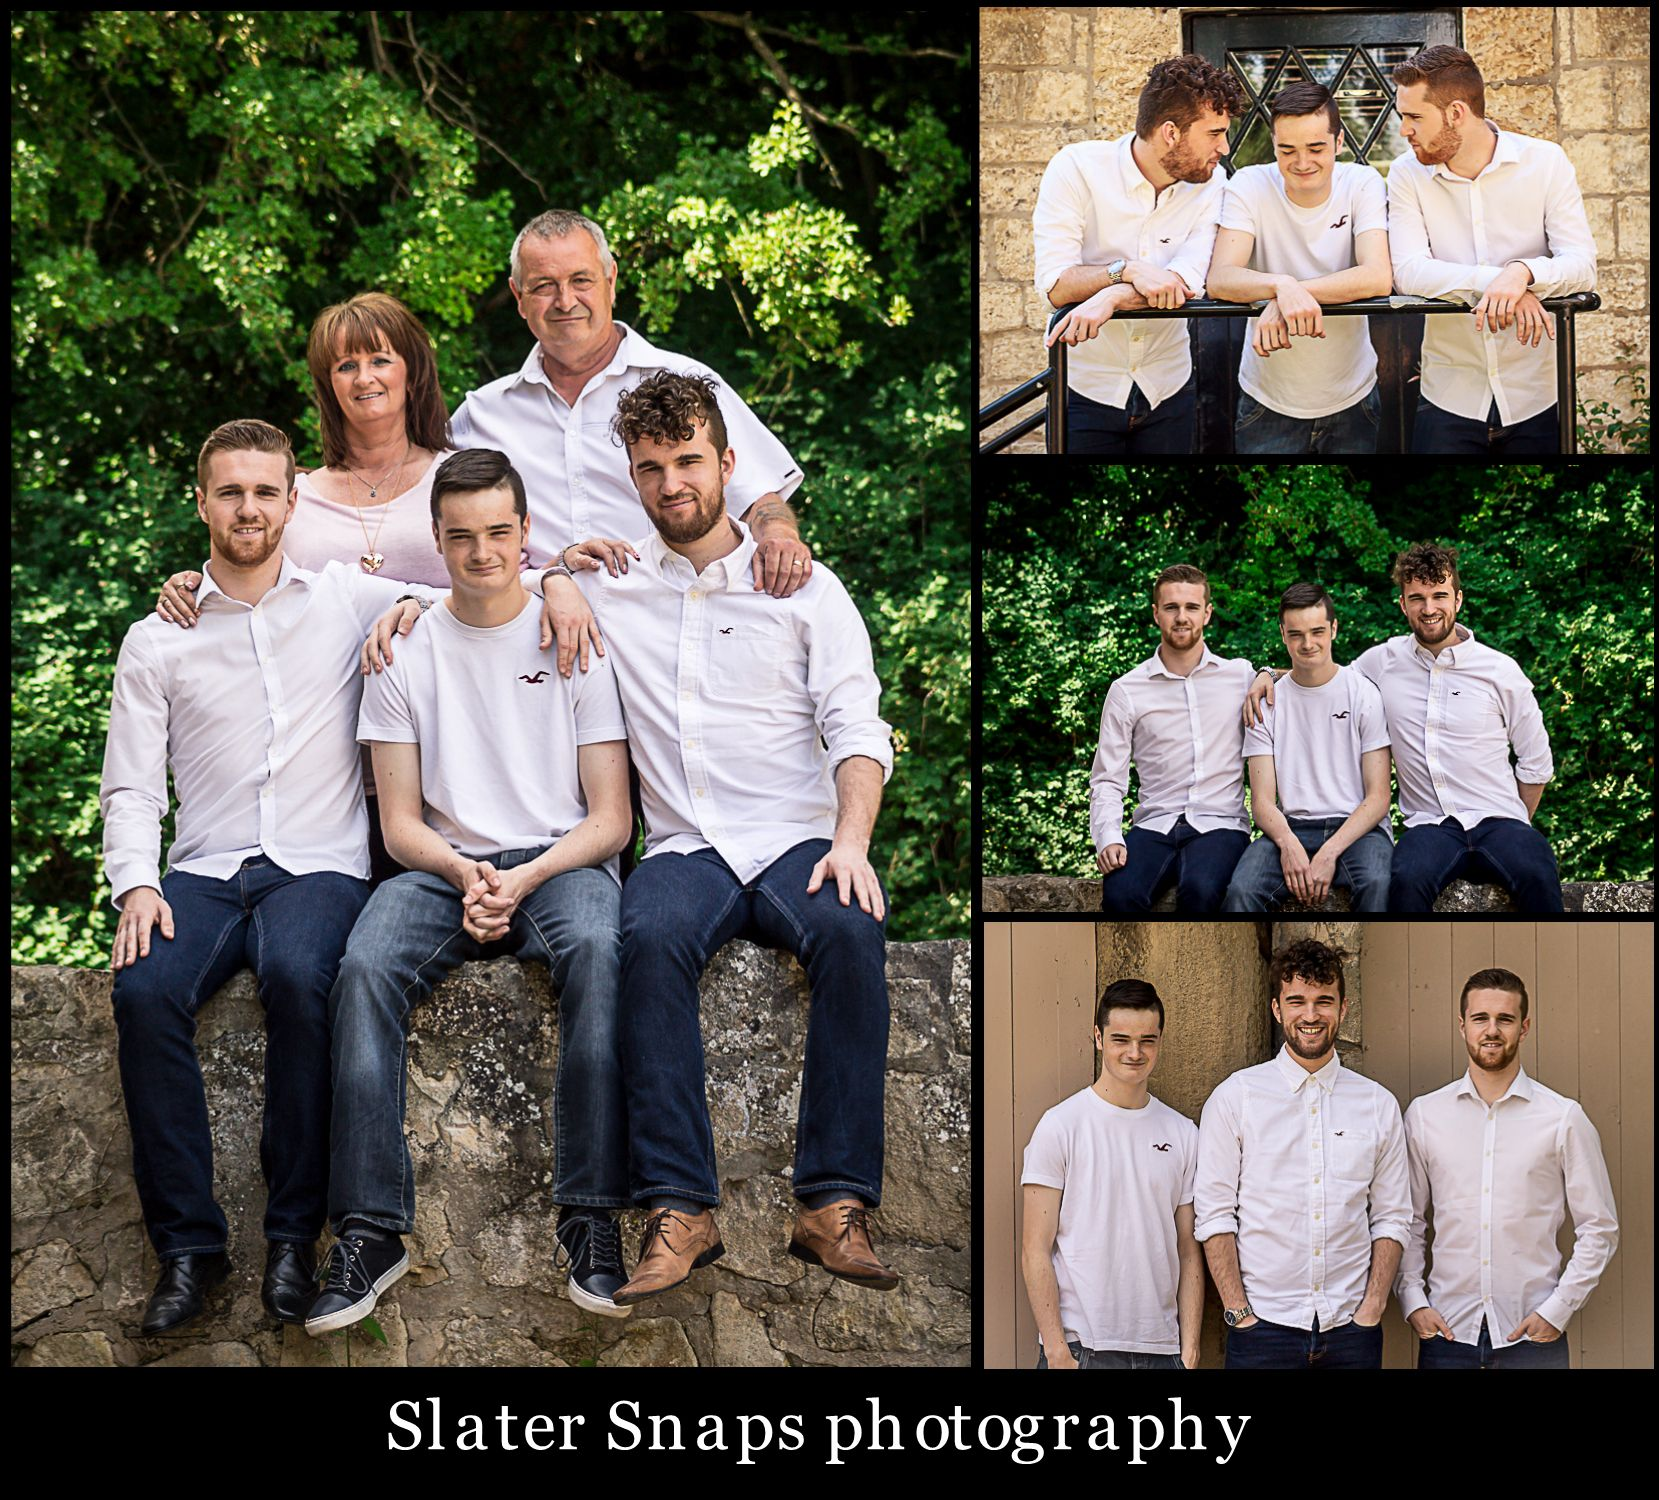 Wedding Poses With Parents: Adult Siblings